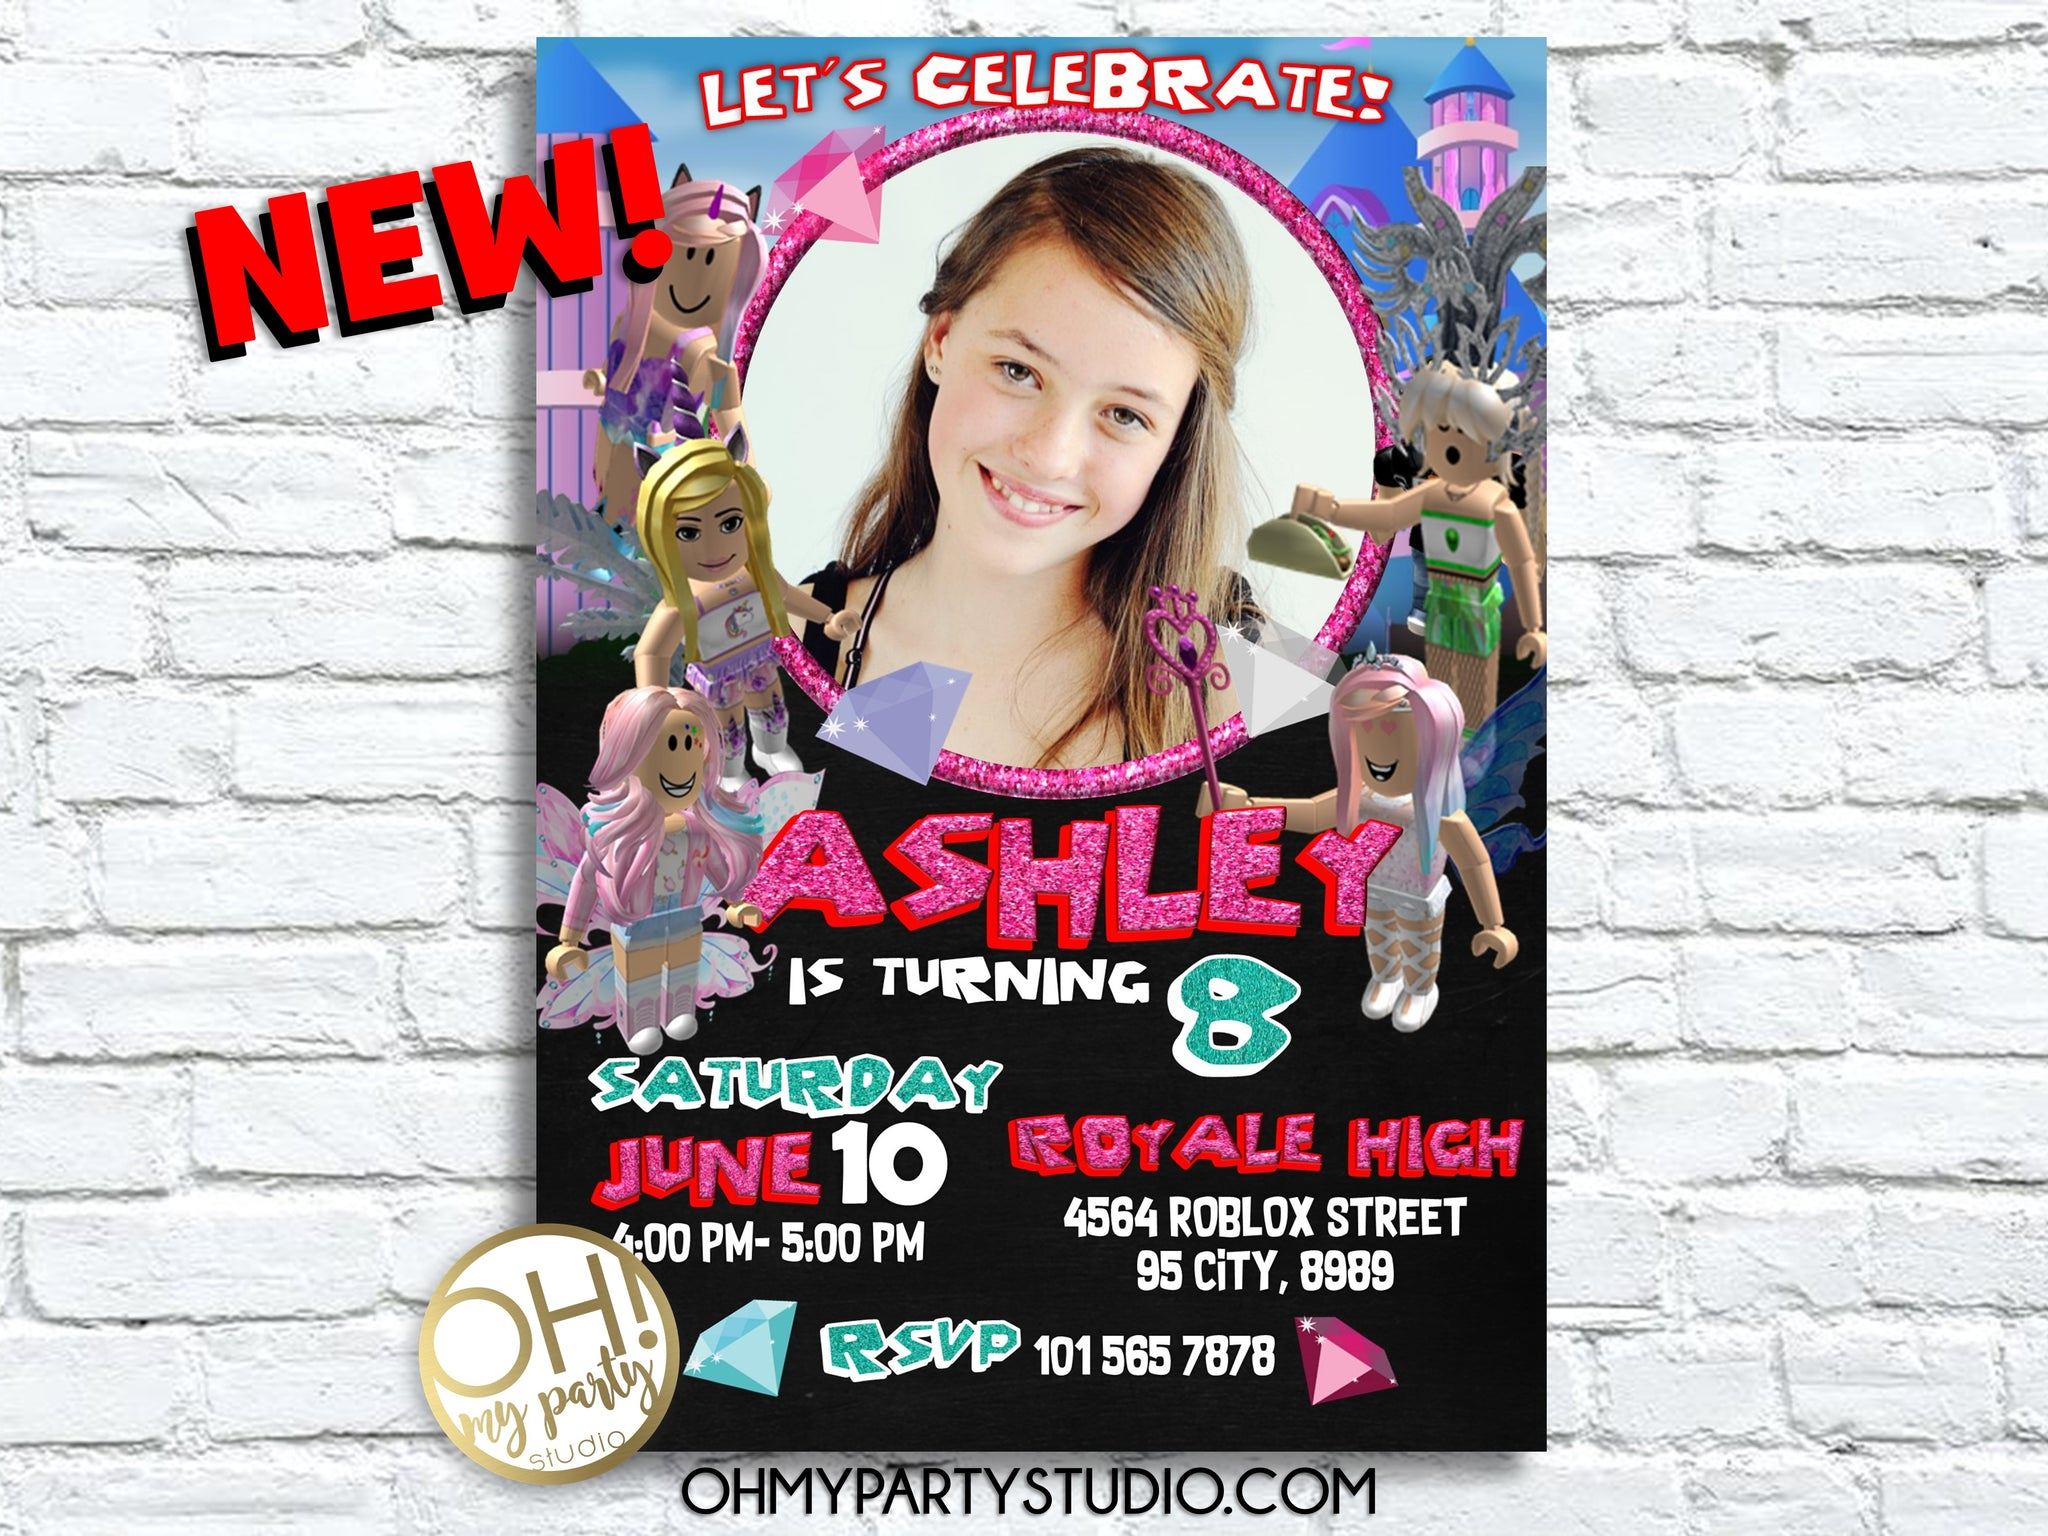 ROBLOX INVITATION FOR GIRL, ROBLOX GIRL INVITATION, ROBLOX GIRL PARTY, ROBLOX GIRL BIRTHDAY,ROBLOX BIRTHDAY PARTY INVITATION, ROBLOX BIRTHDAY PARTY, ROBLOX BIRTHDAY PARTY IDEAS, ROBLOX INVITATION, ROBLOX INVITE, ROBLOX BIRTHDAY, ROBLOX PRINTABLES, ROBLOX DECORATIONS, ROBLOX PARTY INVITE, ROBLOX PARTY, ROBLOX INVITATIONS, ROBLOX POOL PARTY, GAMES INVITATIONS